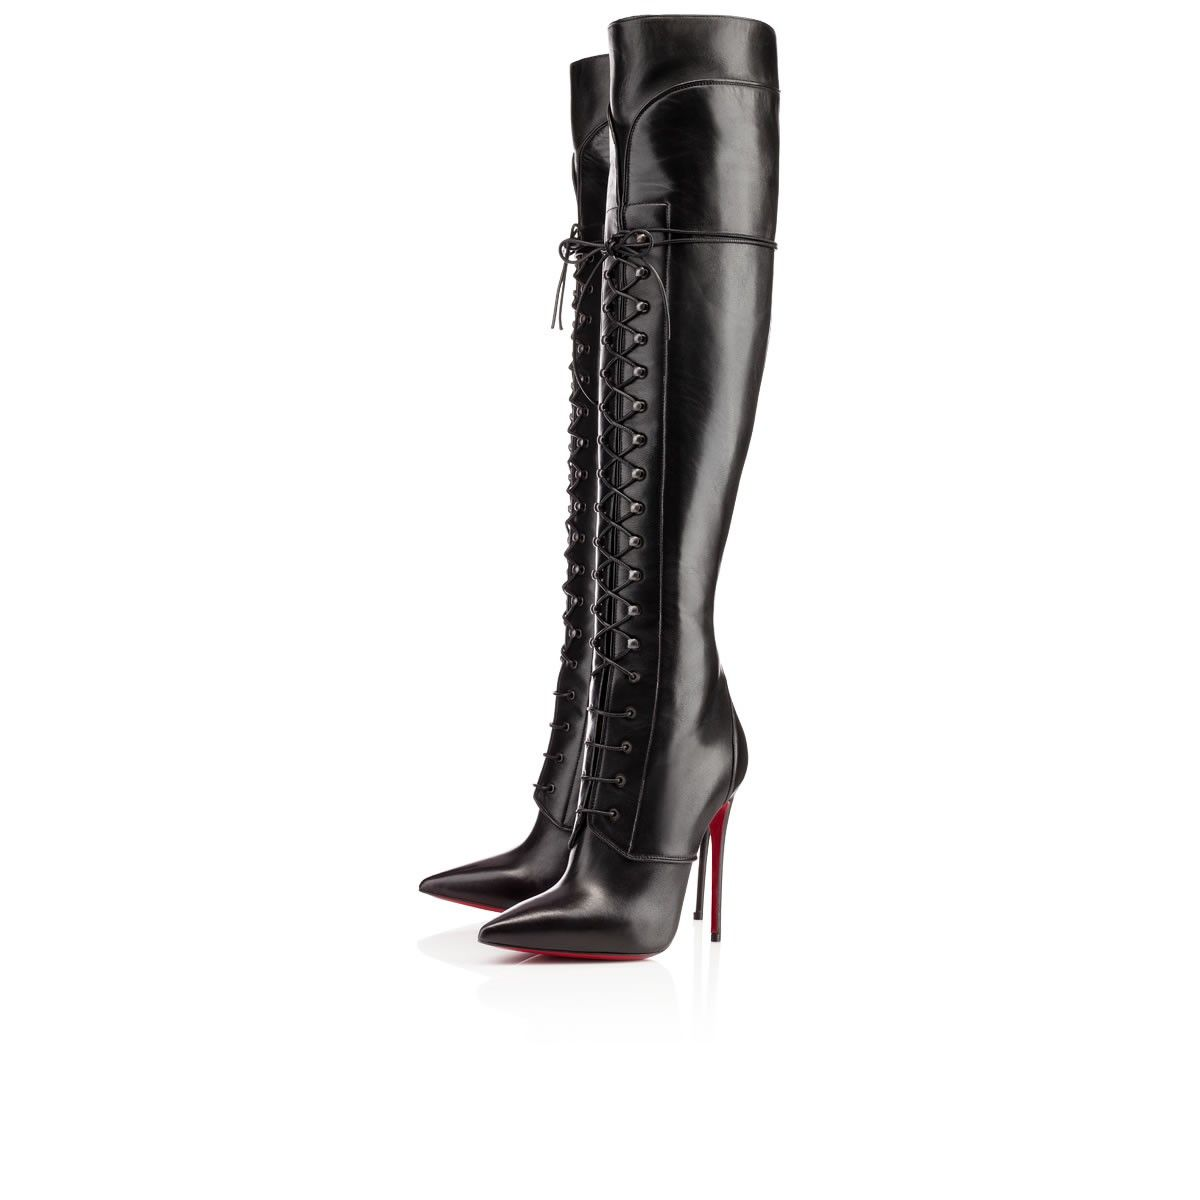 Mado Boot 120mm Black Leather